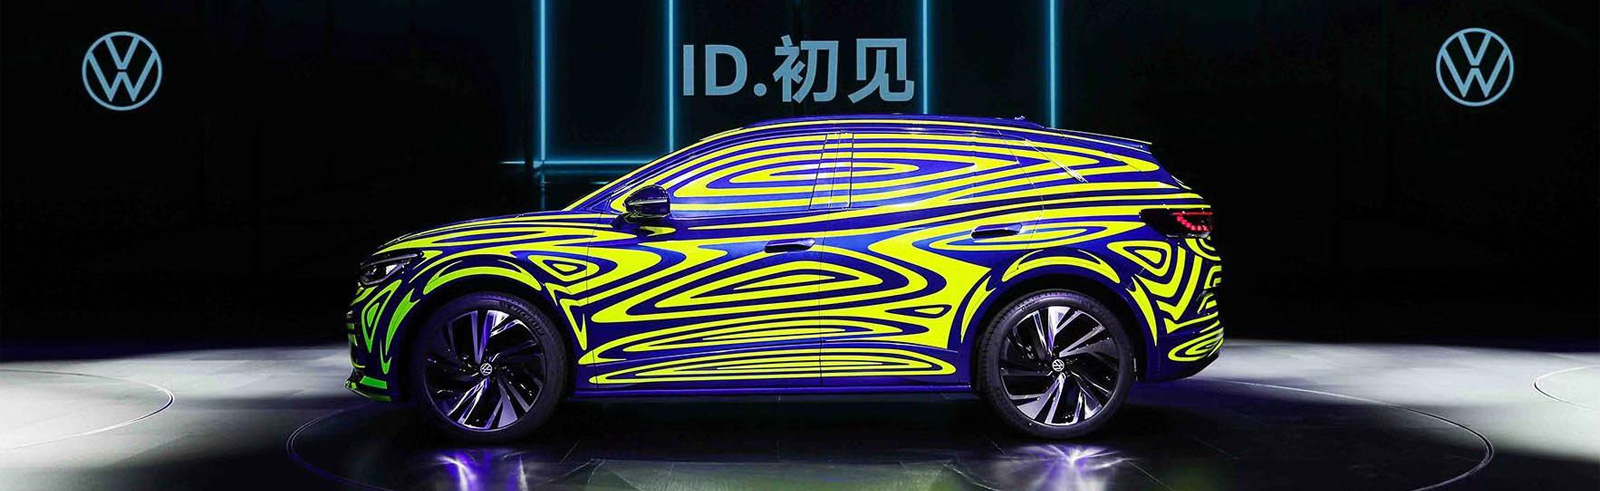 Volkswagen to buy 20% of Guoxuan - an EV batteries manufacturer in China